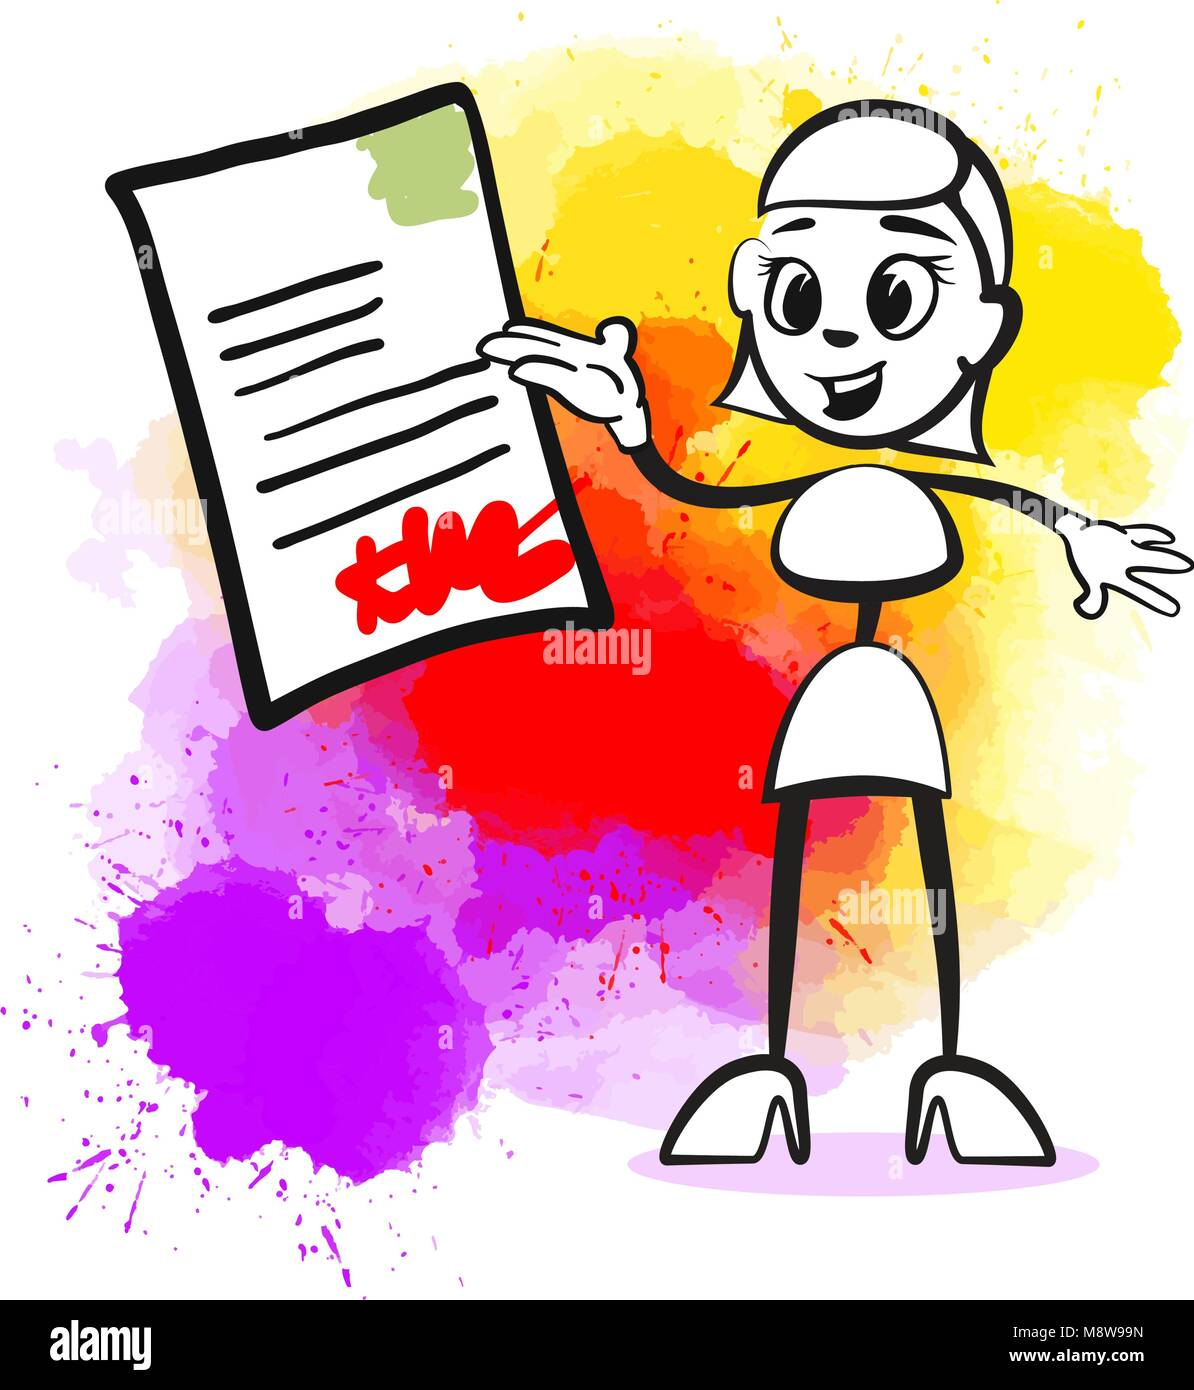 Business woman signing contract. Emotional business icon for digital marketing and print. Stickman series. Stock Vector